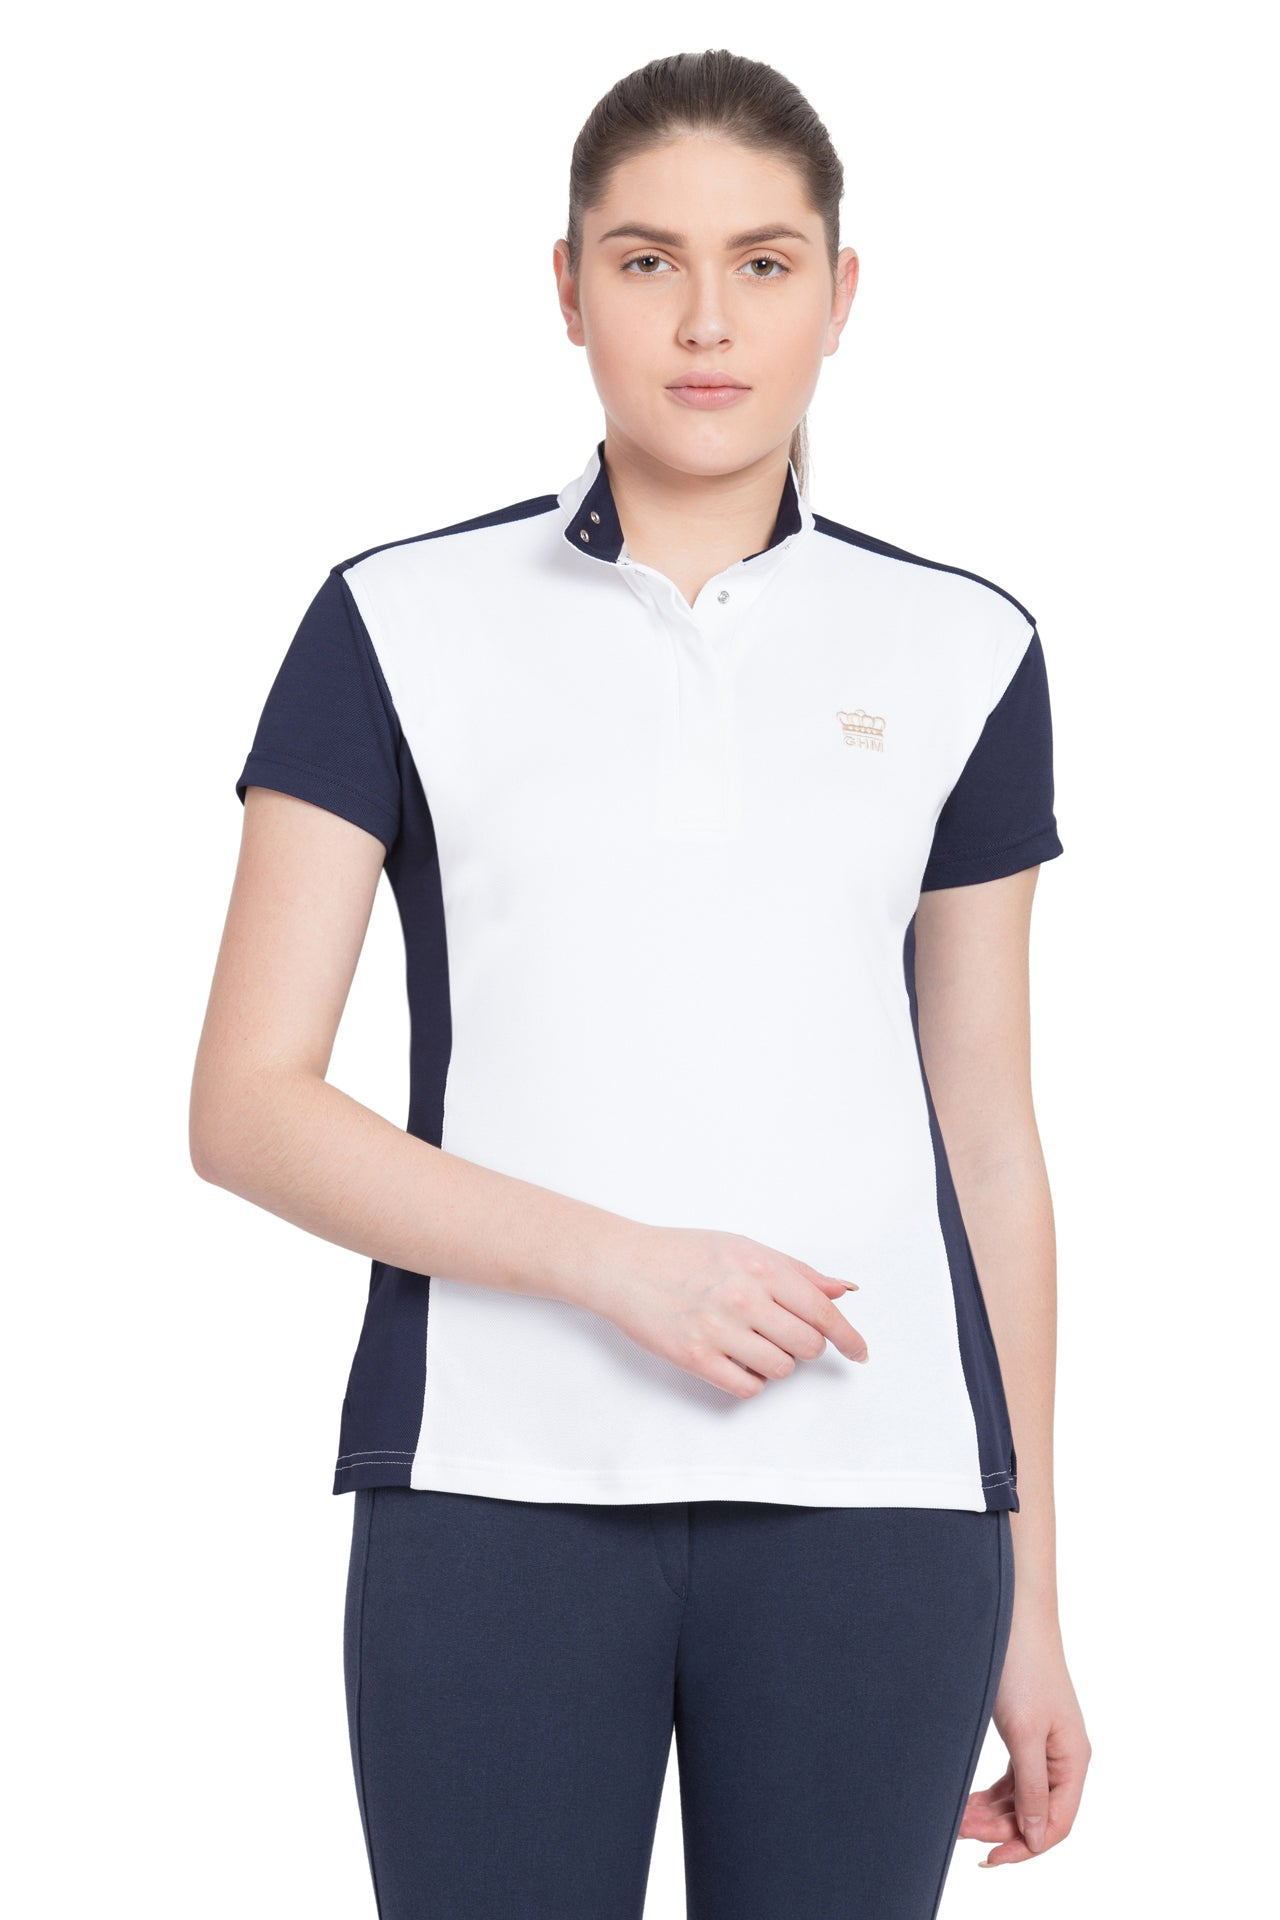 George H Morris Ladies Champion Short Sleeve Show Shirt_1504